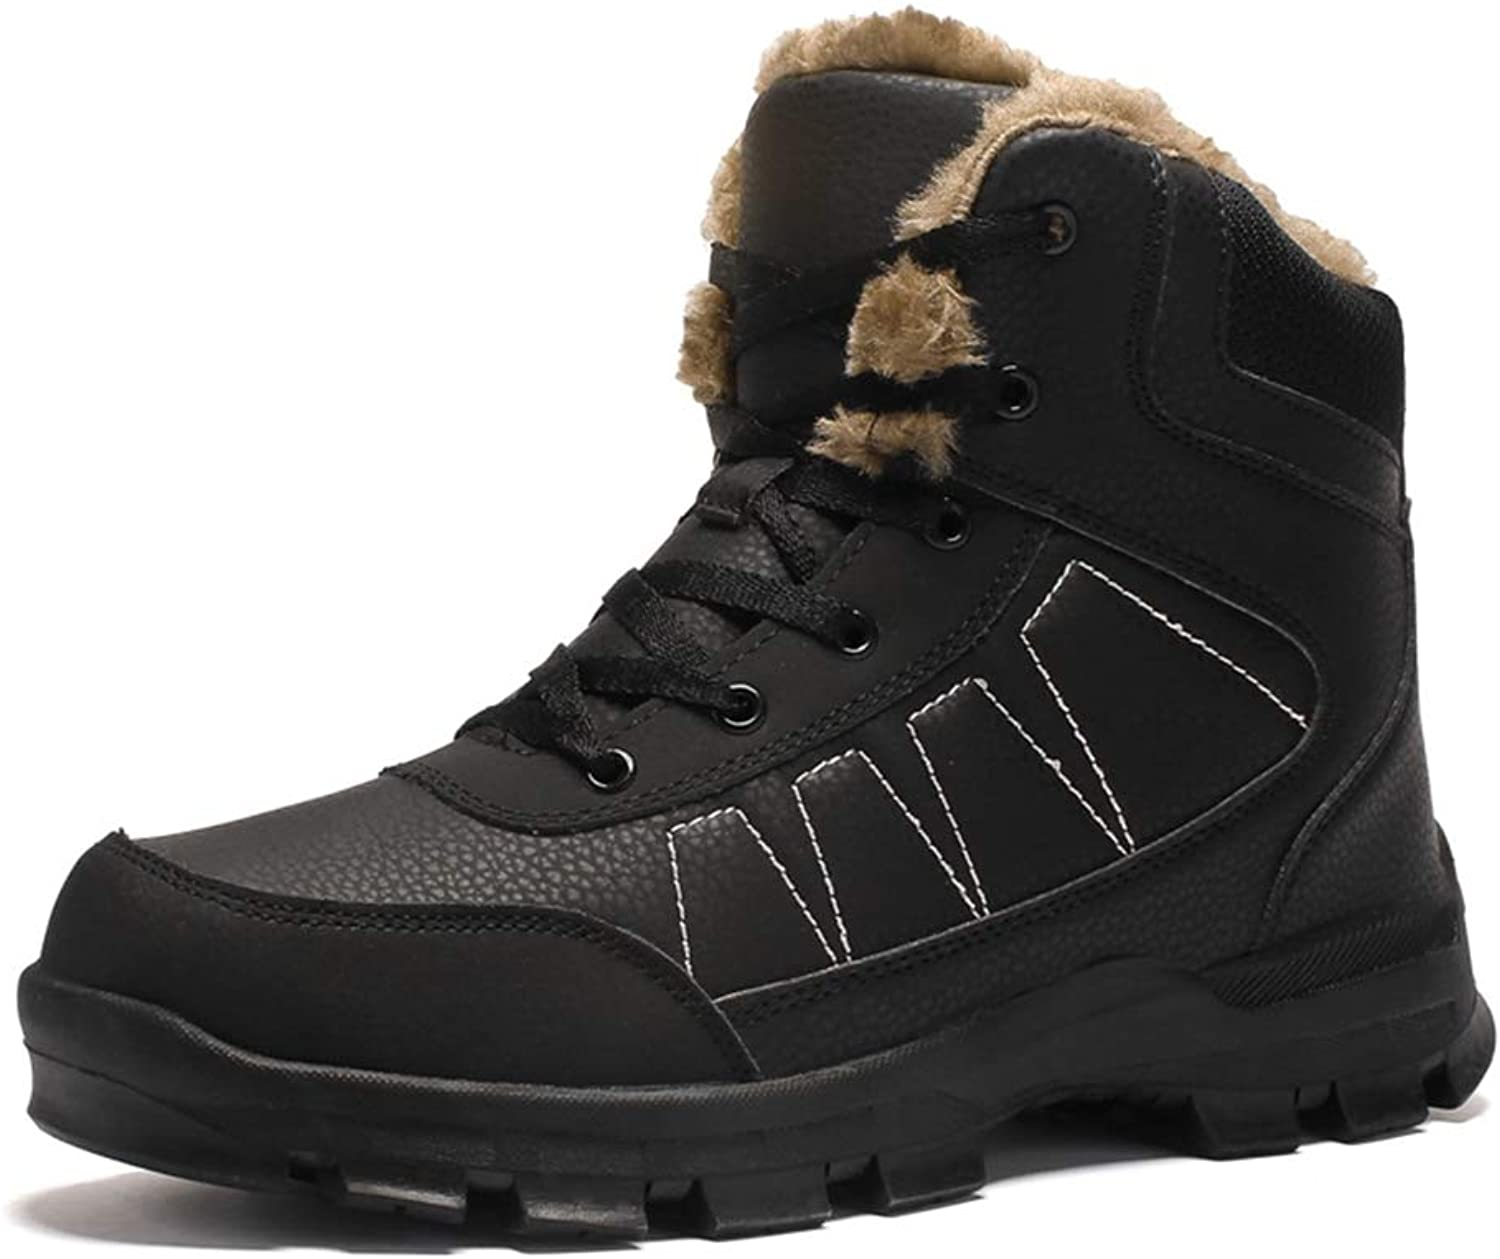 COSDN Mens Snow Waterproof Outdoor Boots Fur Lined Winter Warm shoes Ankle Booties High Top Hiking Sneakers